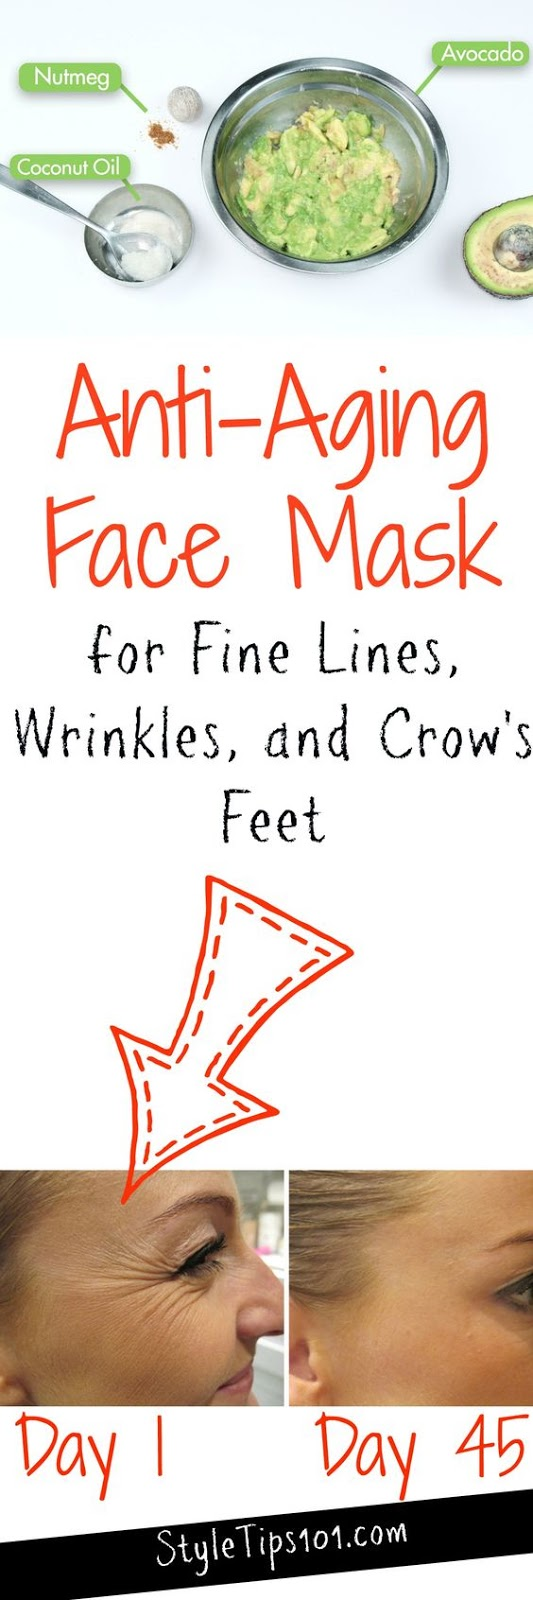 HOMEMADE ANTI-AGING FACE MASK FOR FINE LINES & WRINKLES